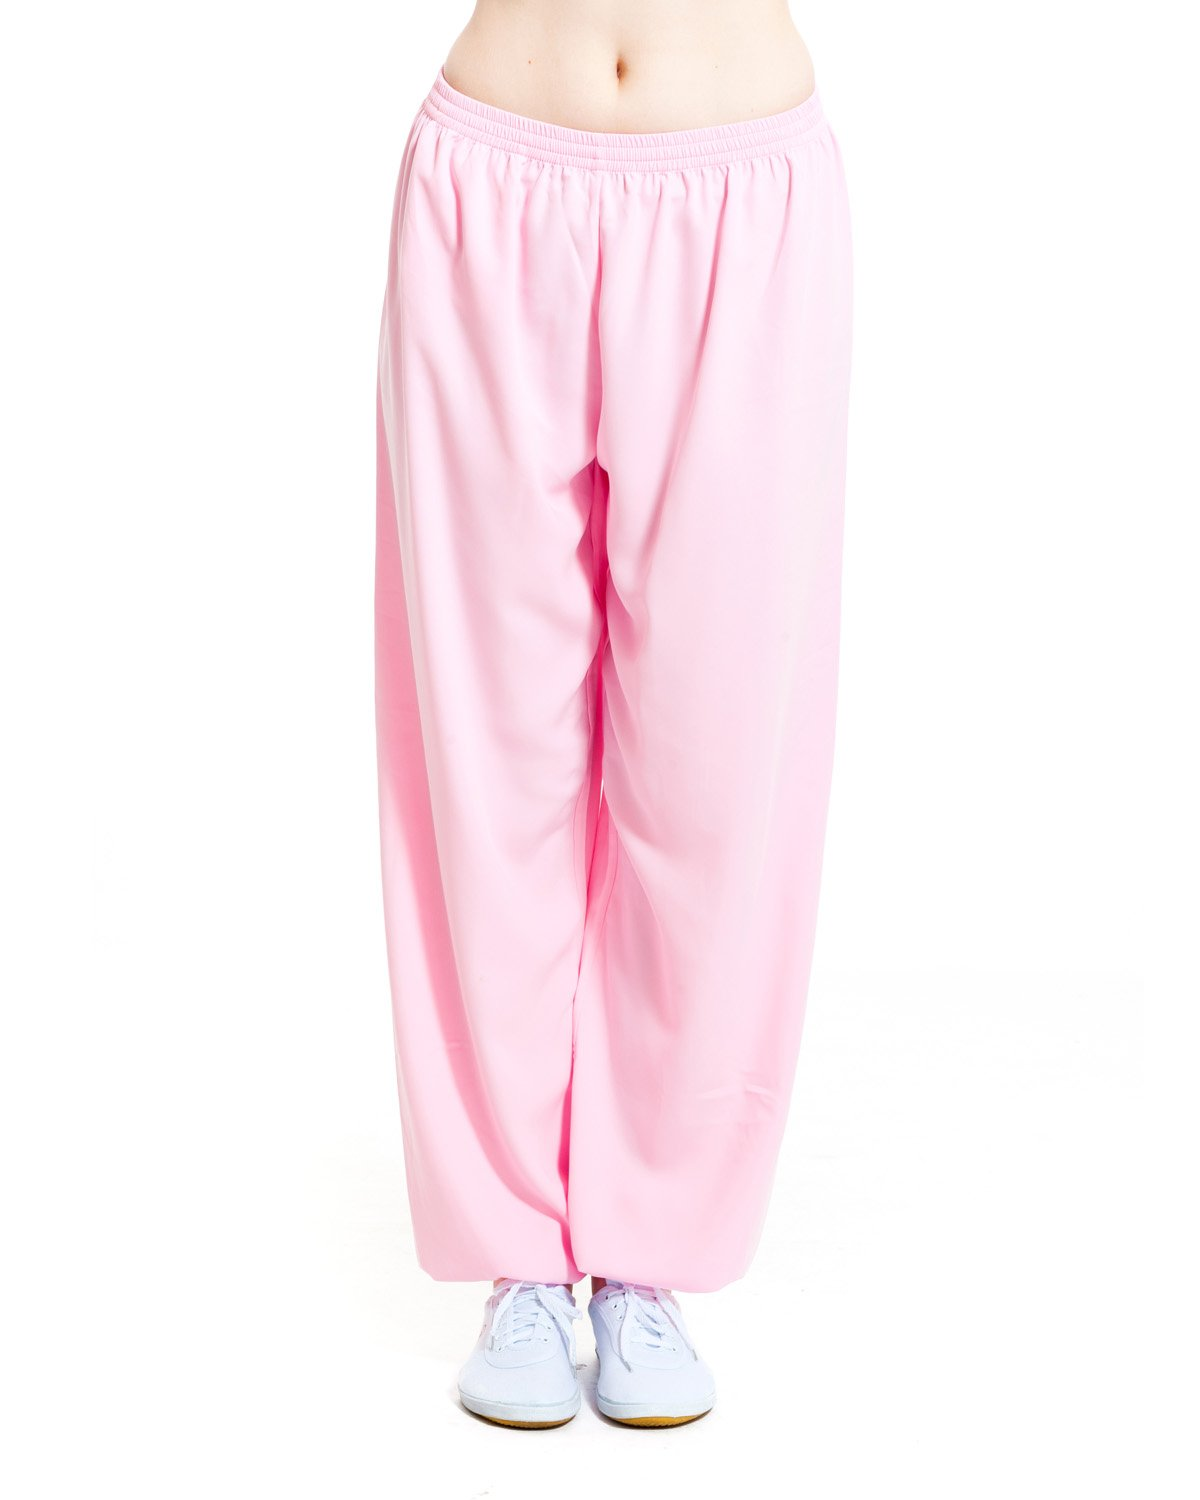 ICNBUYS Women's Kung Fu Tai Chi Pants Cotton Silk WTCPCS000